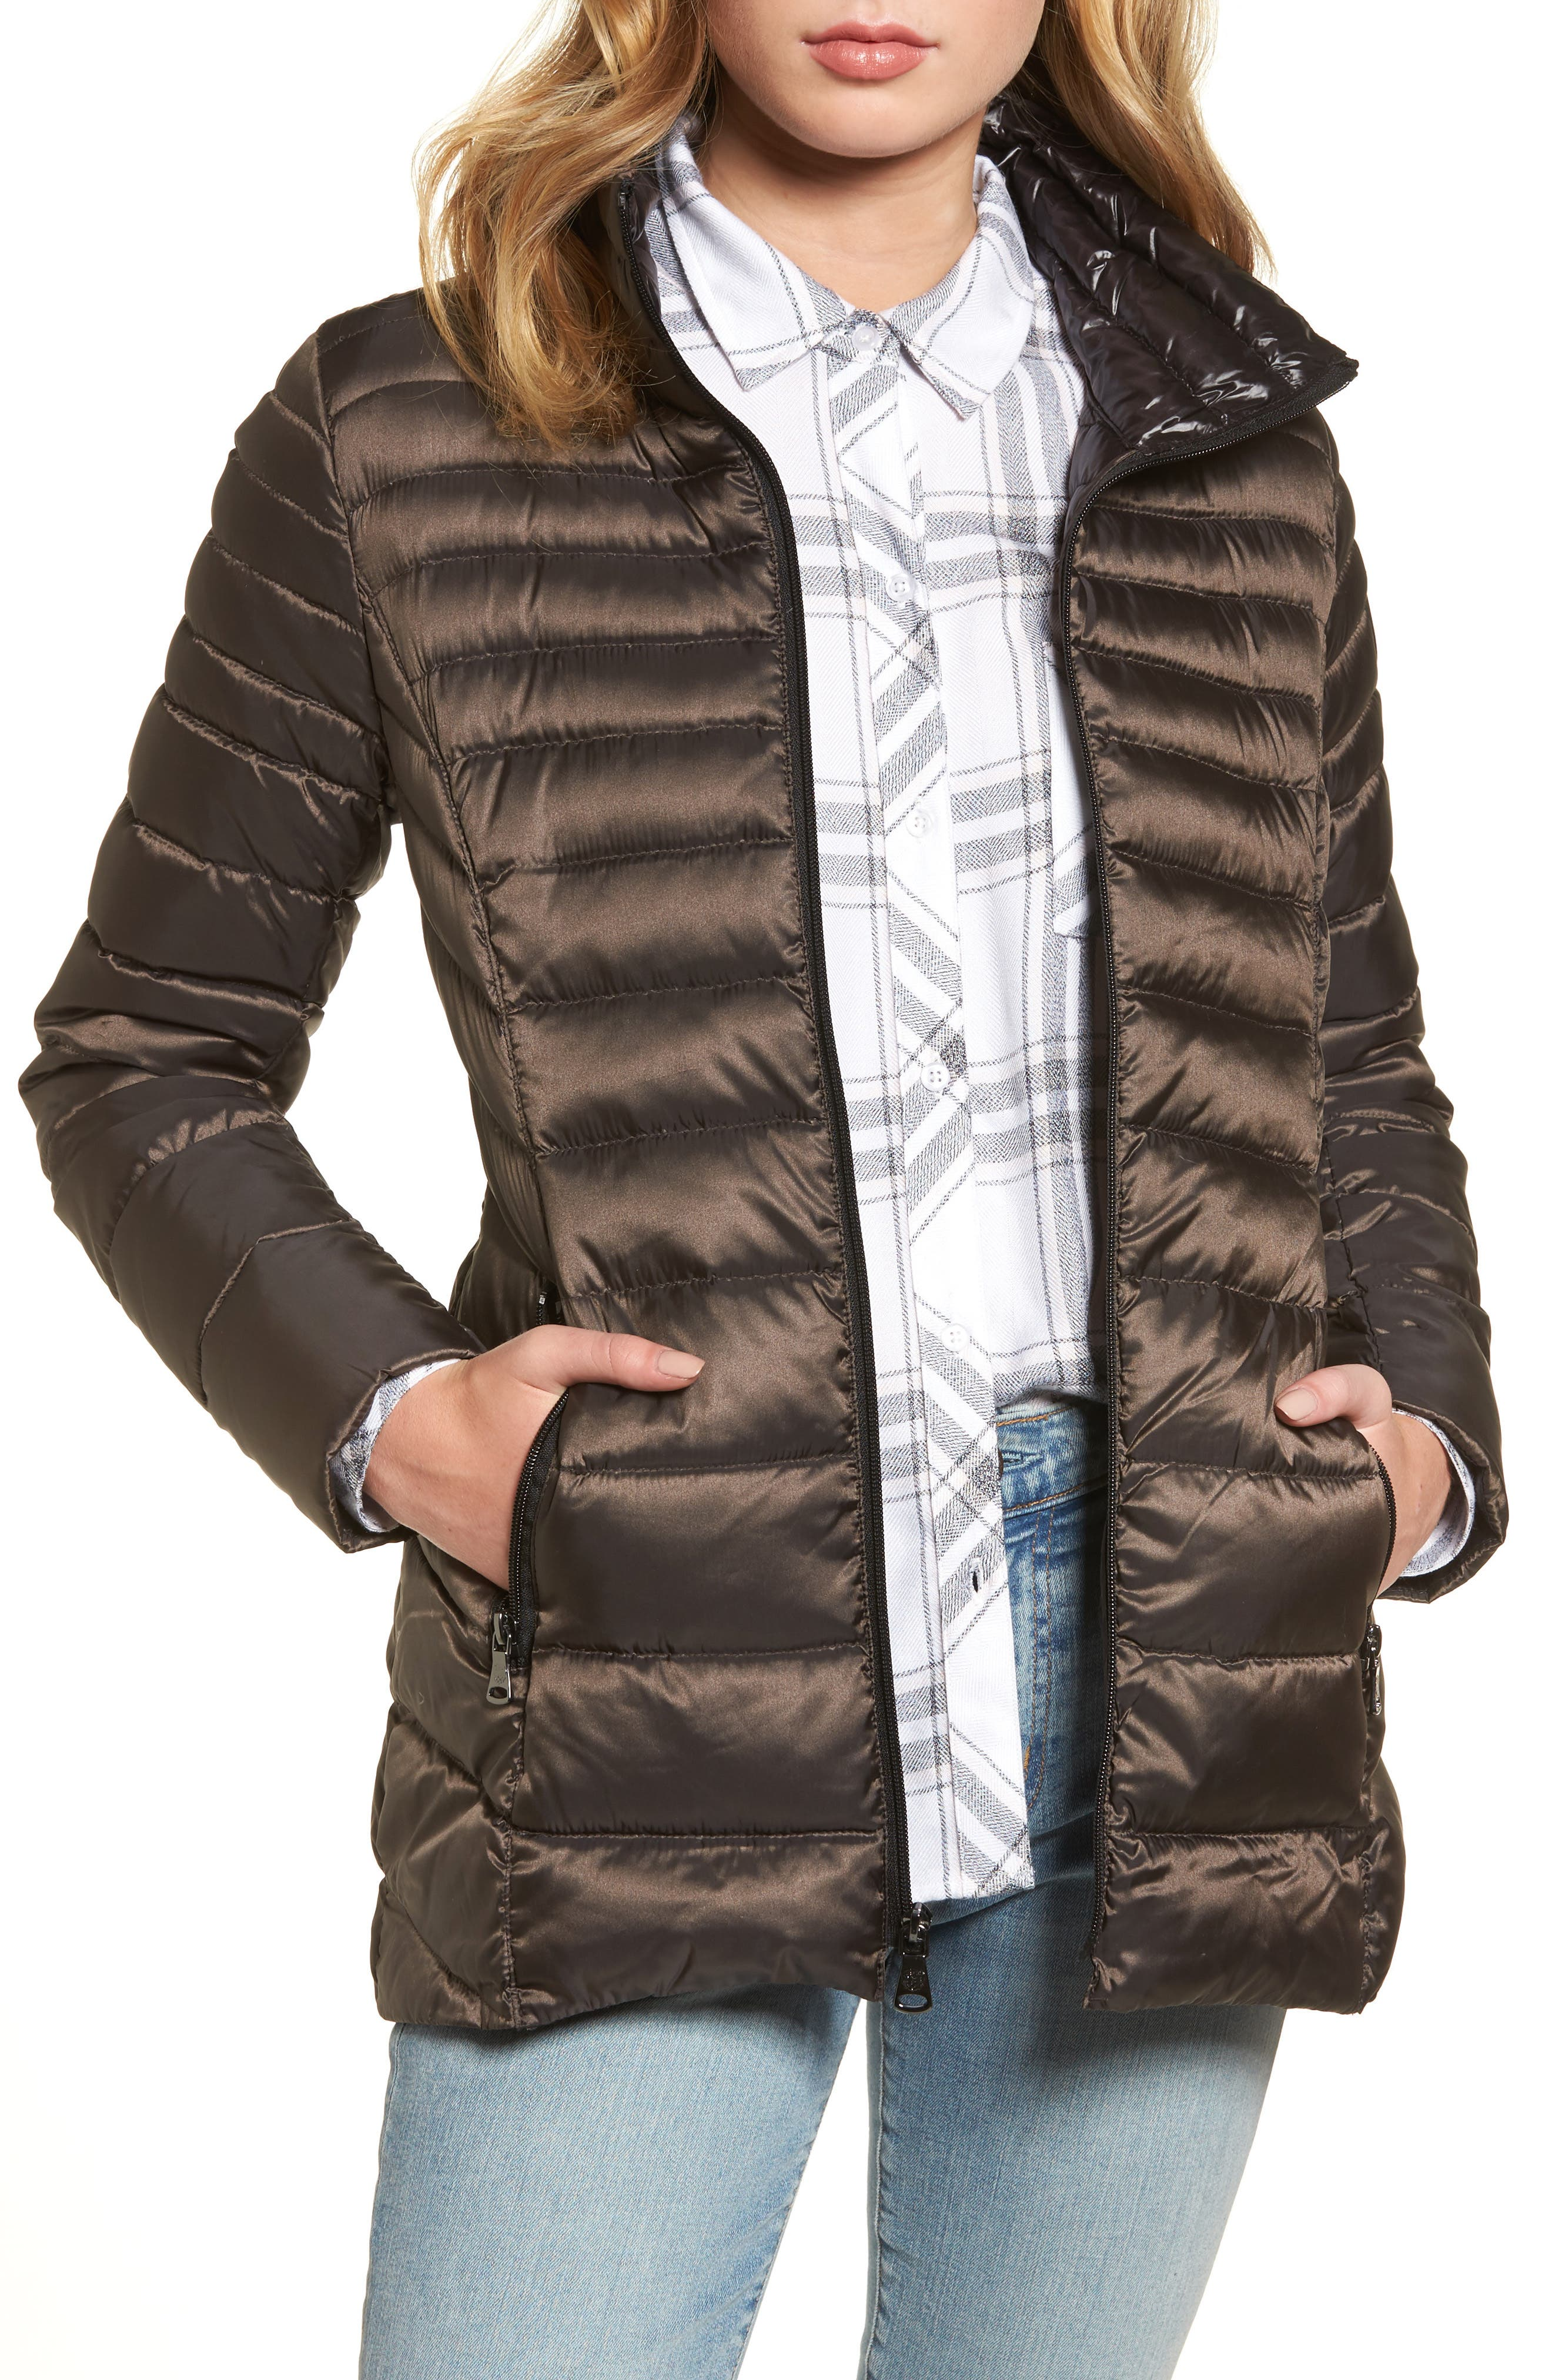 Alternate Image 1 Selected - Vince Camuto Packable Down Jacket